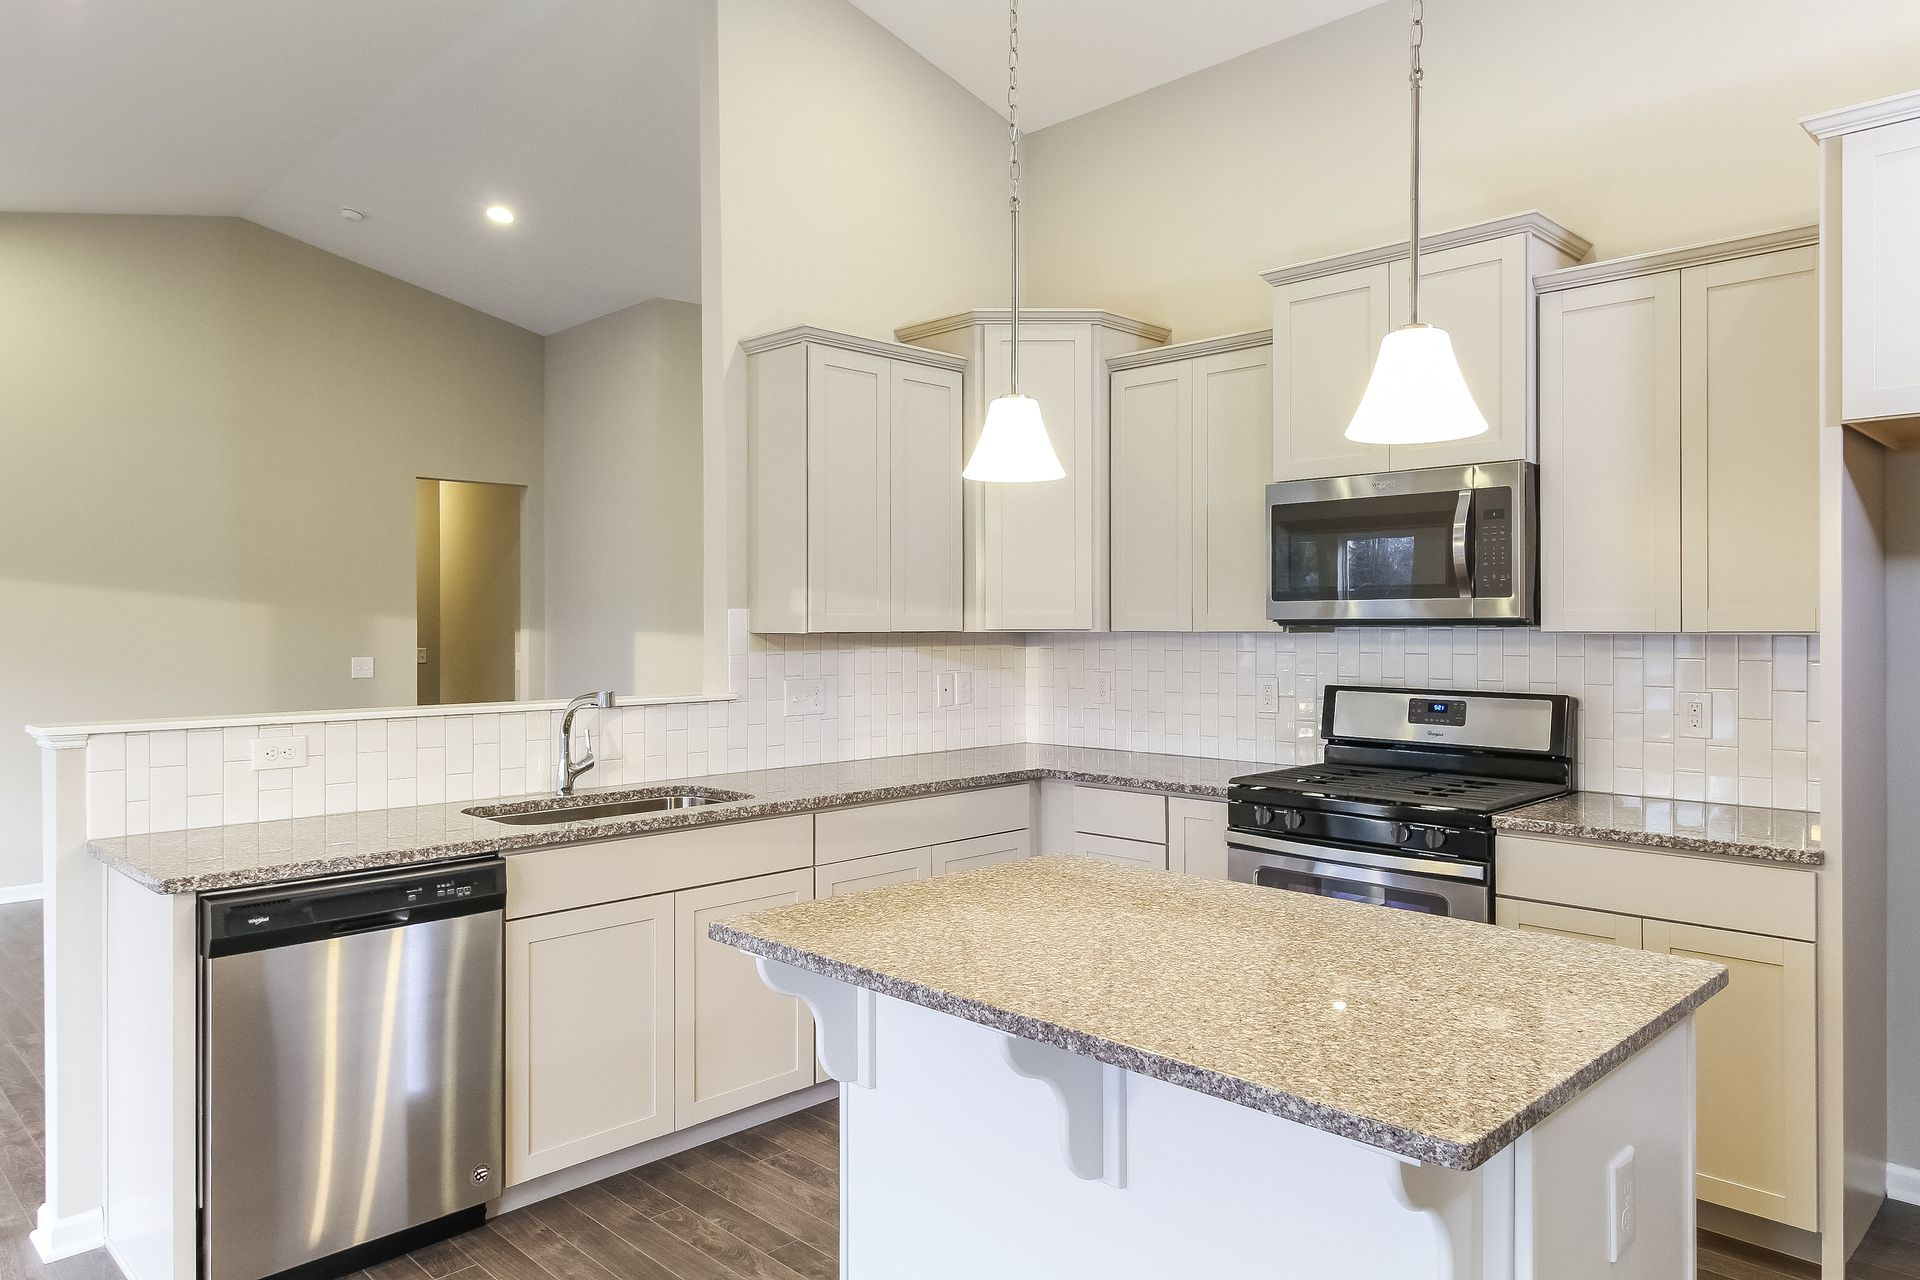 Kitchen featured in the Traditions 1600 V8.0b By Allen Edwin Homes in Benton Harbor, MI